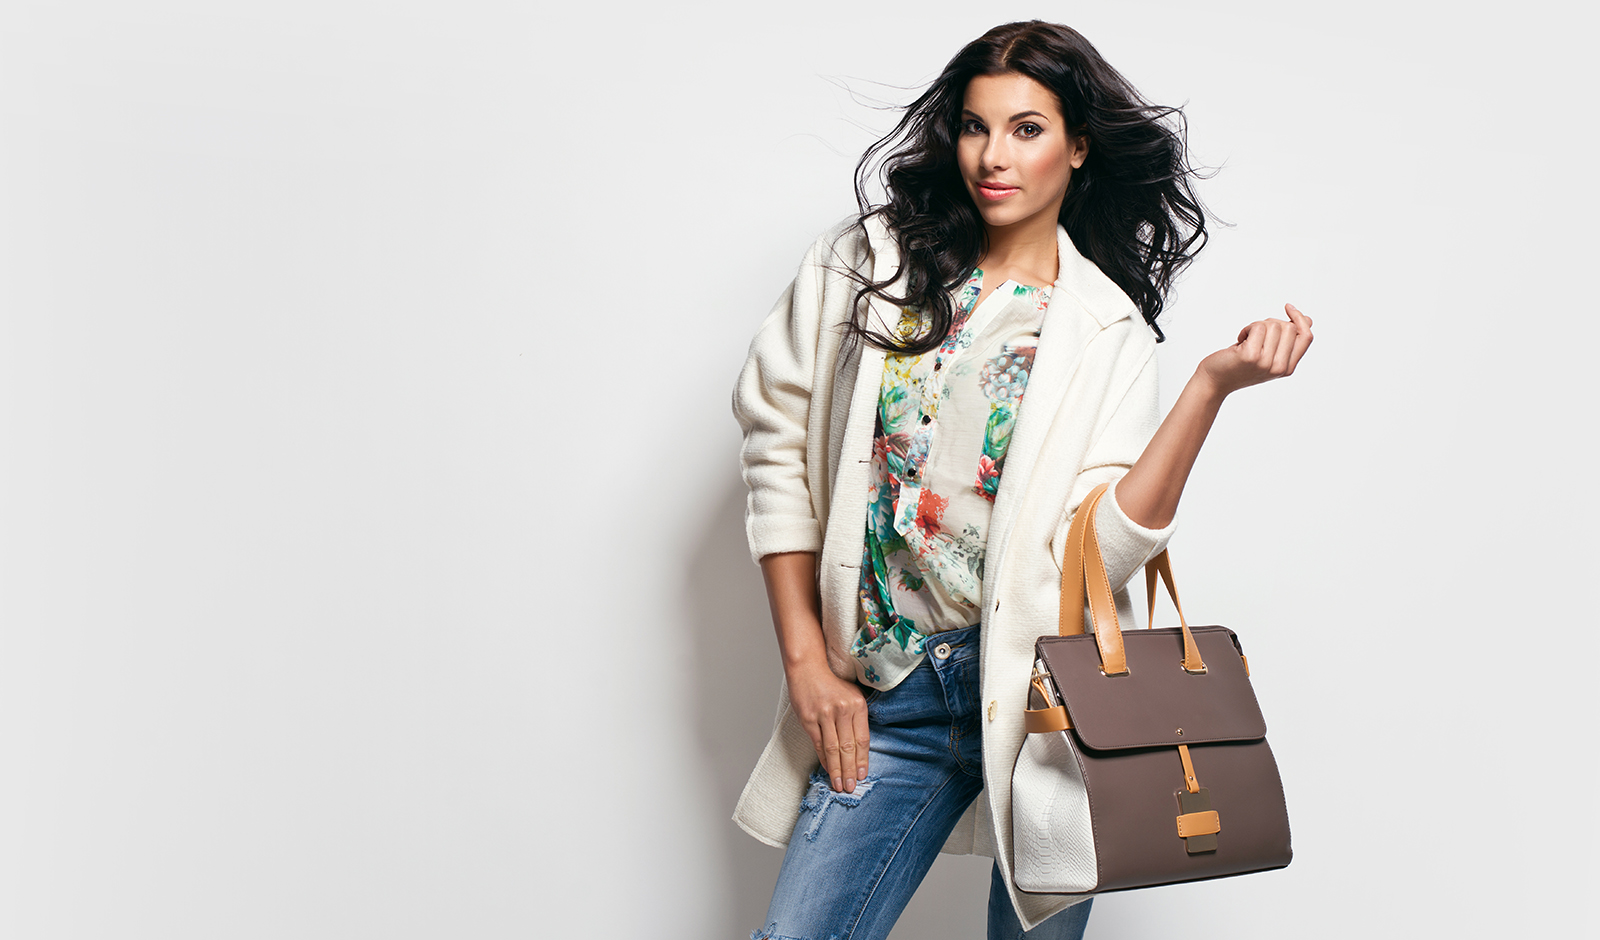 fluctuation-of-the-ideal-bodyweight-fashion-history-woman-in-fashionable-outfit-with-a-bag